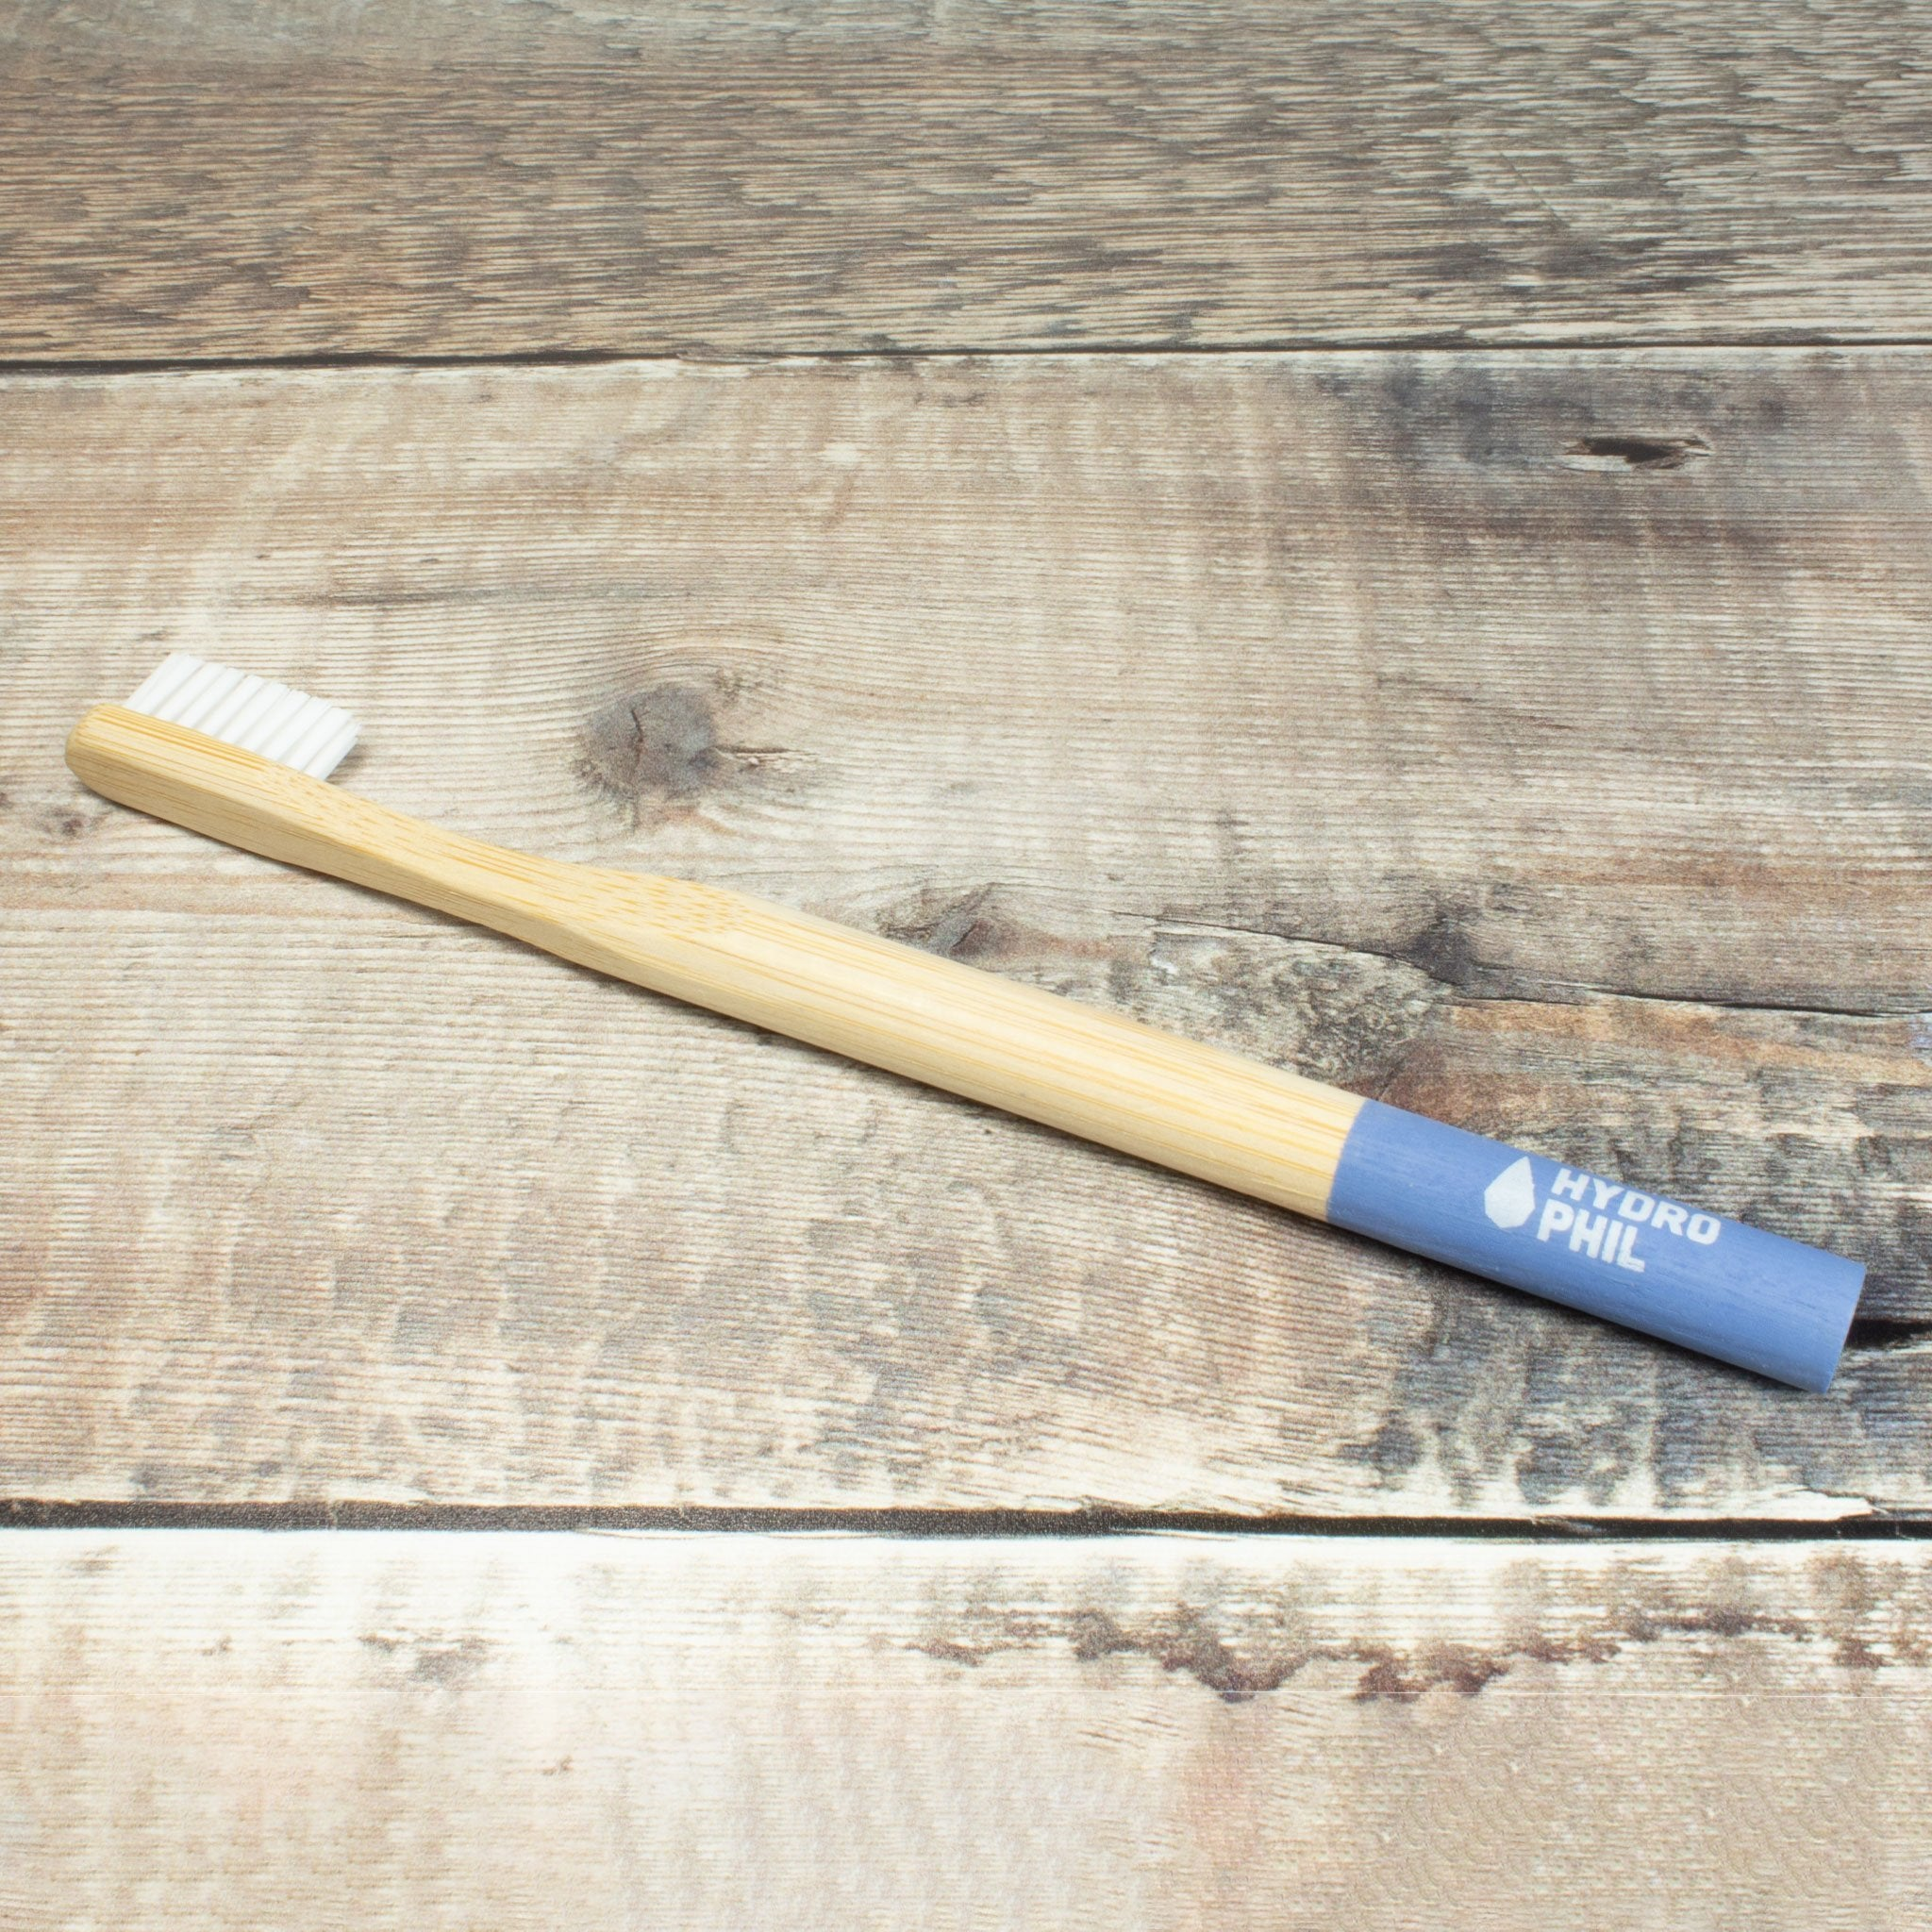 Bamboo Toothbrush - Pale Blue | Toothbrush - The Naughty Shrew